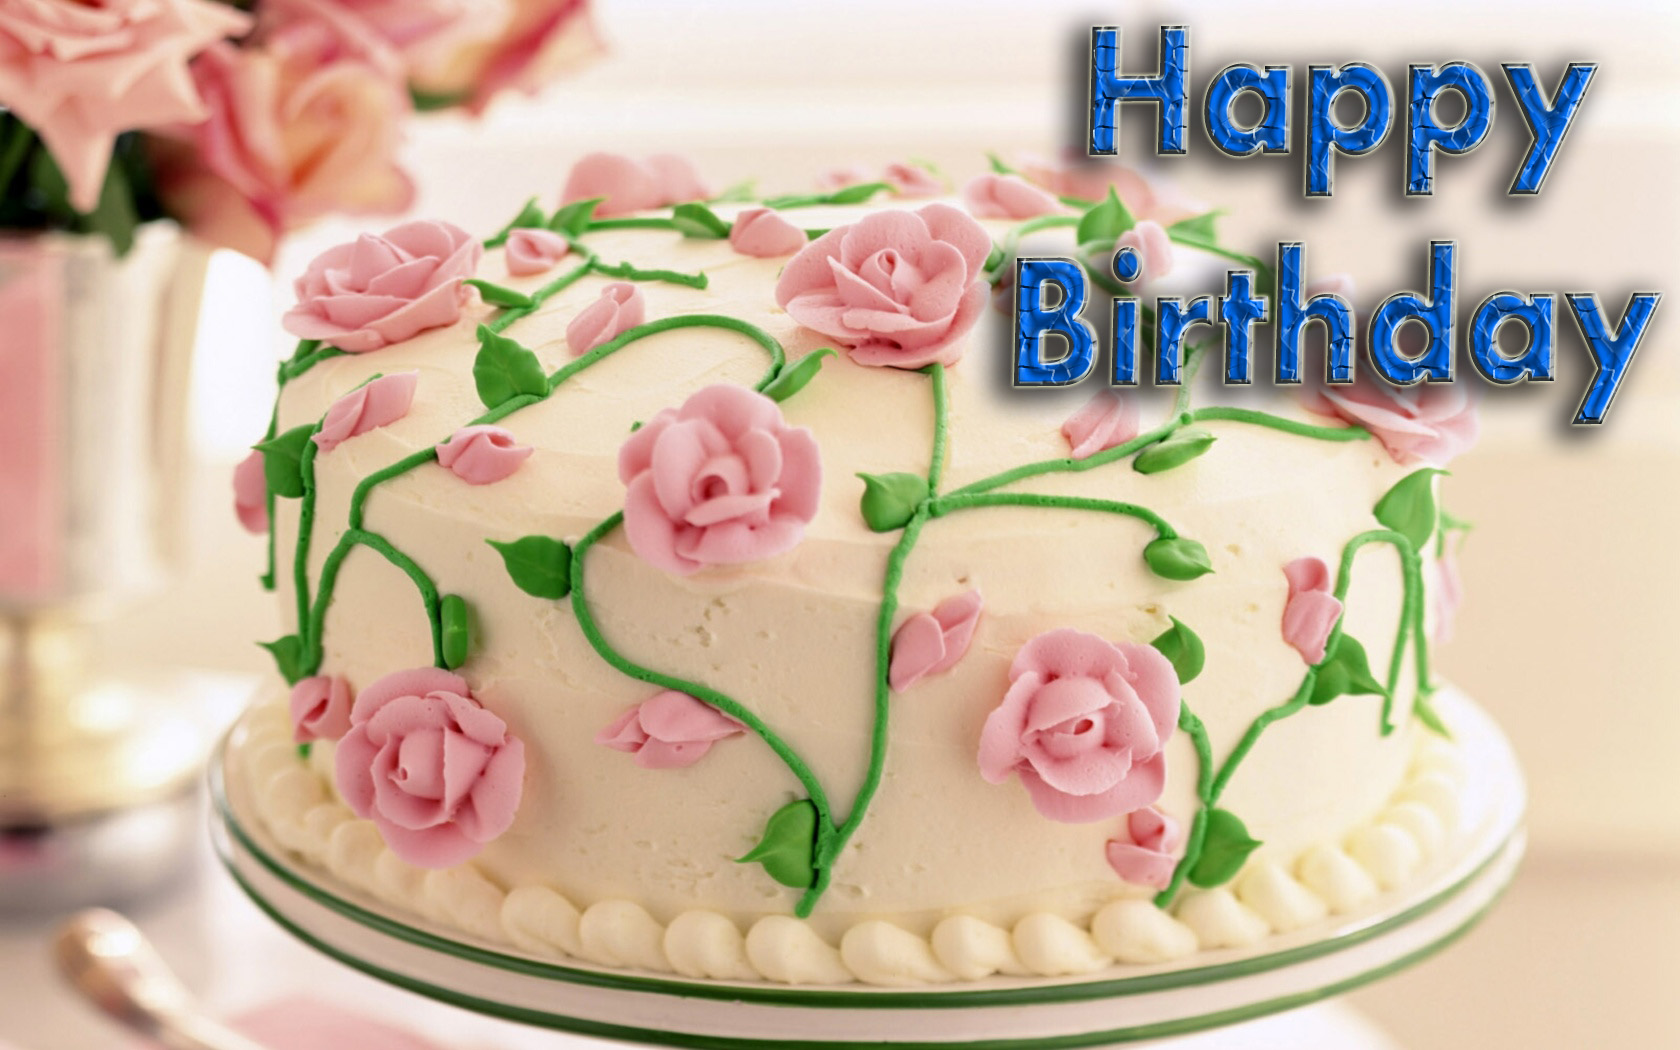 birthday images download hd ; Birthday-Cake-High-Quality-HD-Wallpaper-and-Images